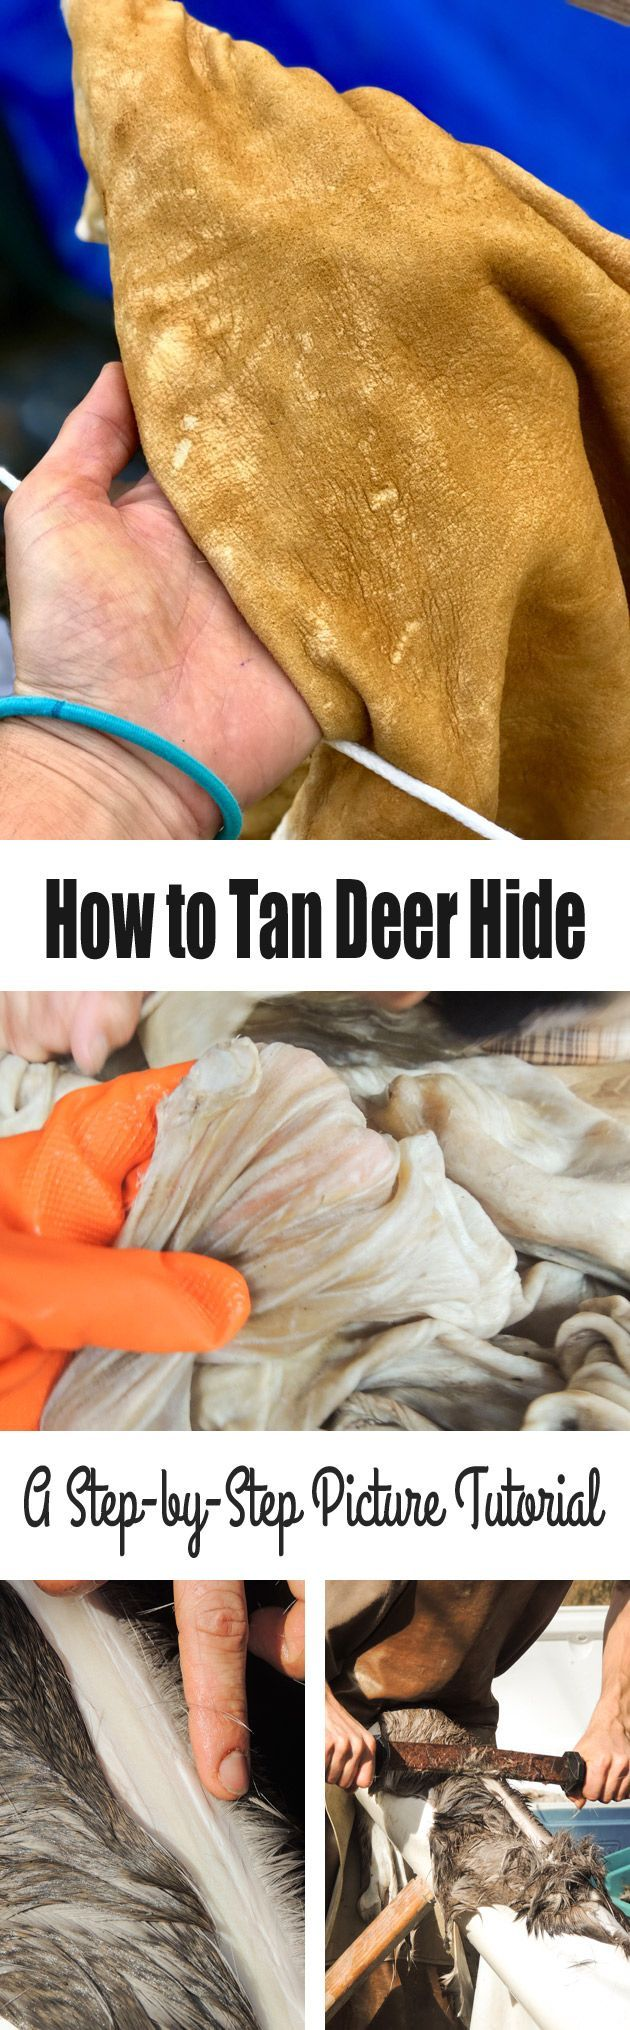 Join me for a step by step picture tutorial on how to tan deer hide. Let me show you the traditional method of turning deerskin into workable buckskin. #LadyLeesHome #deer #hunting #hidetanning #buckskin #leatherwork